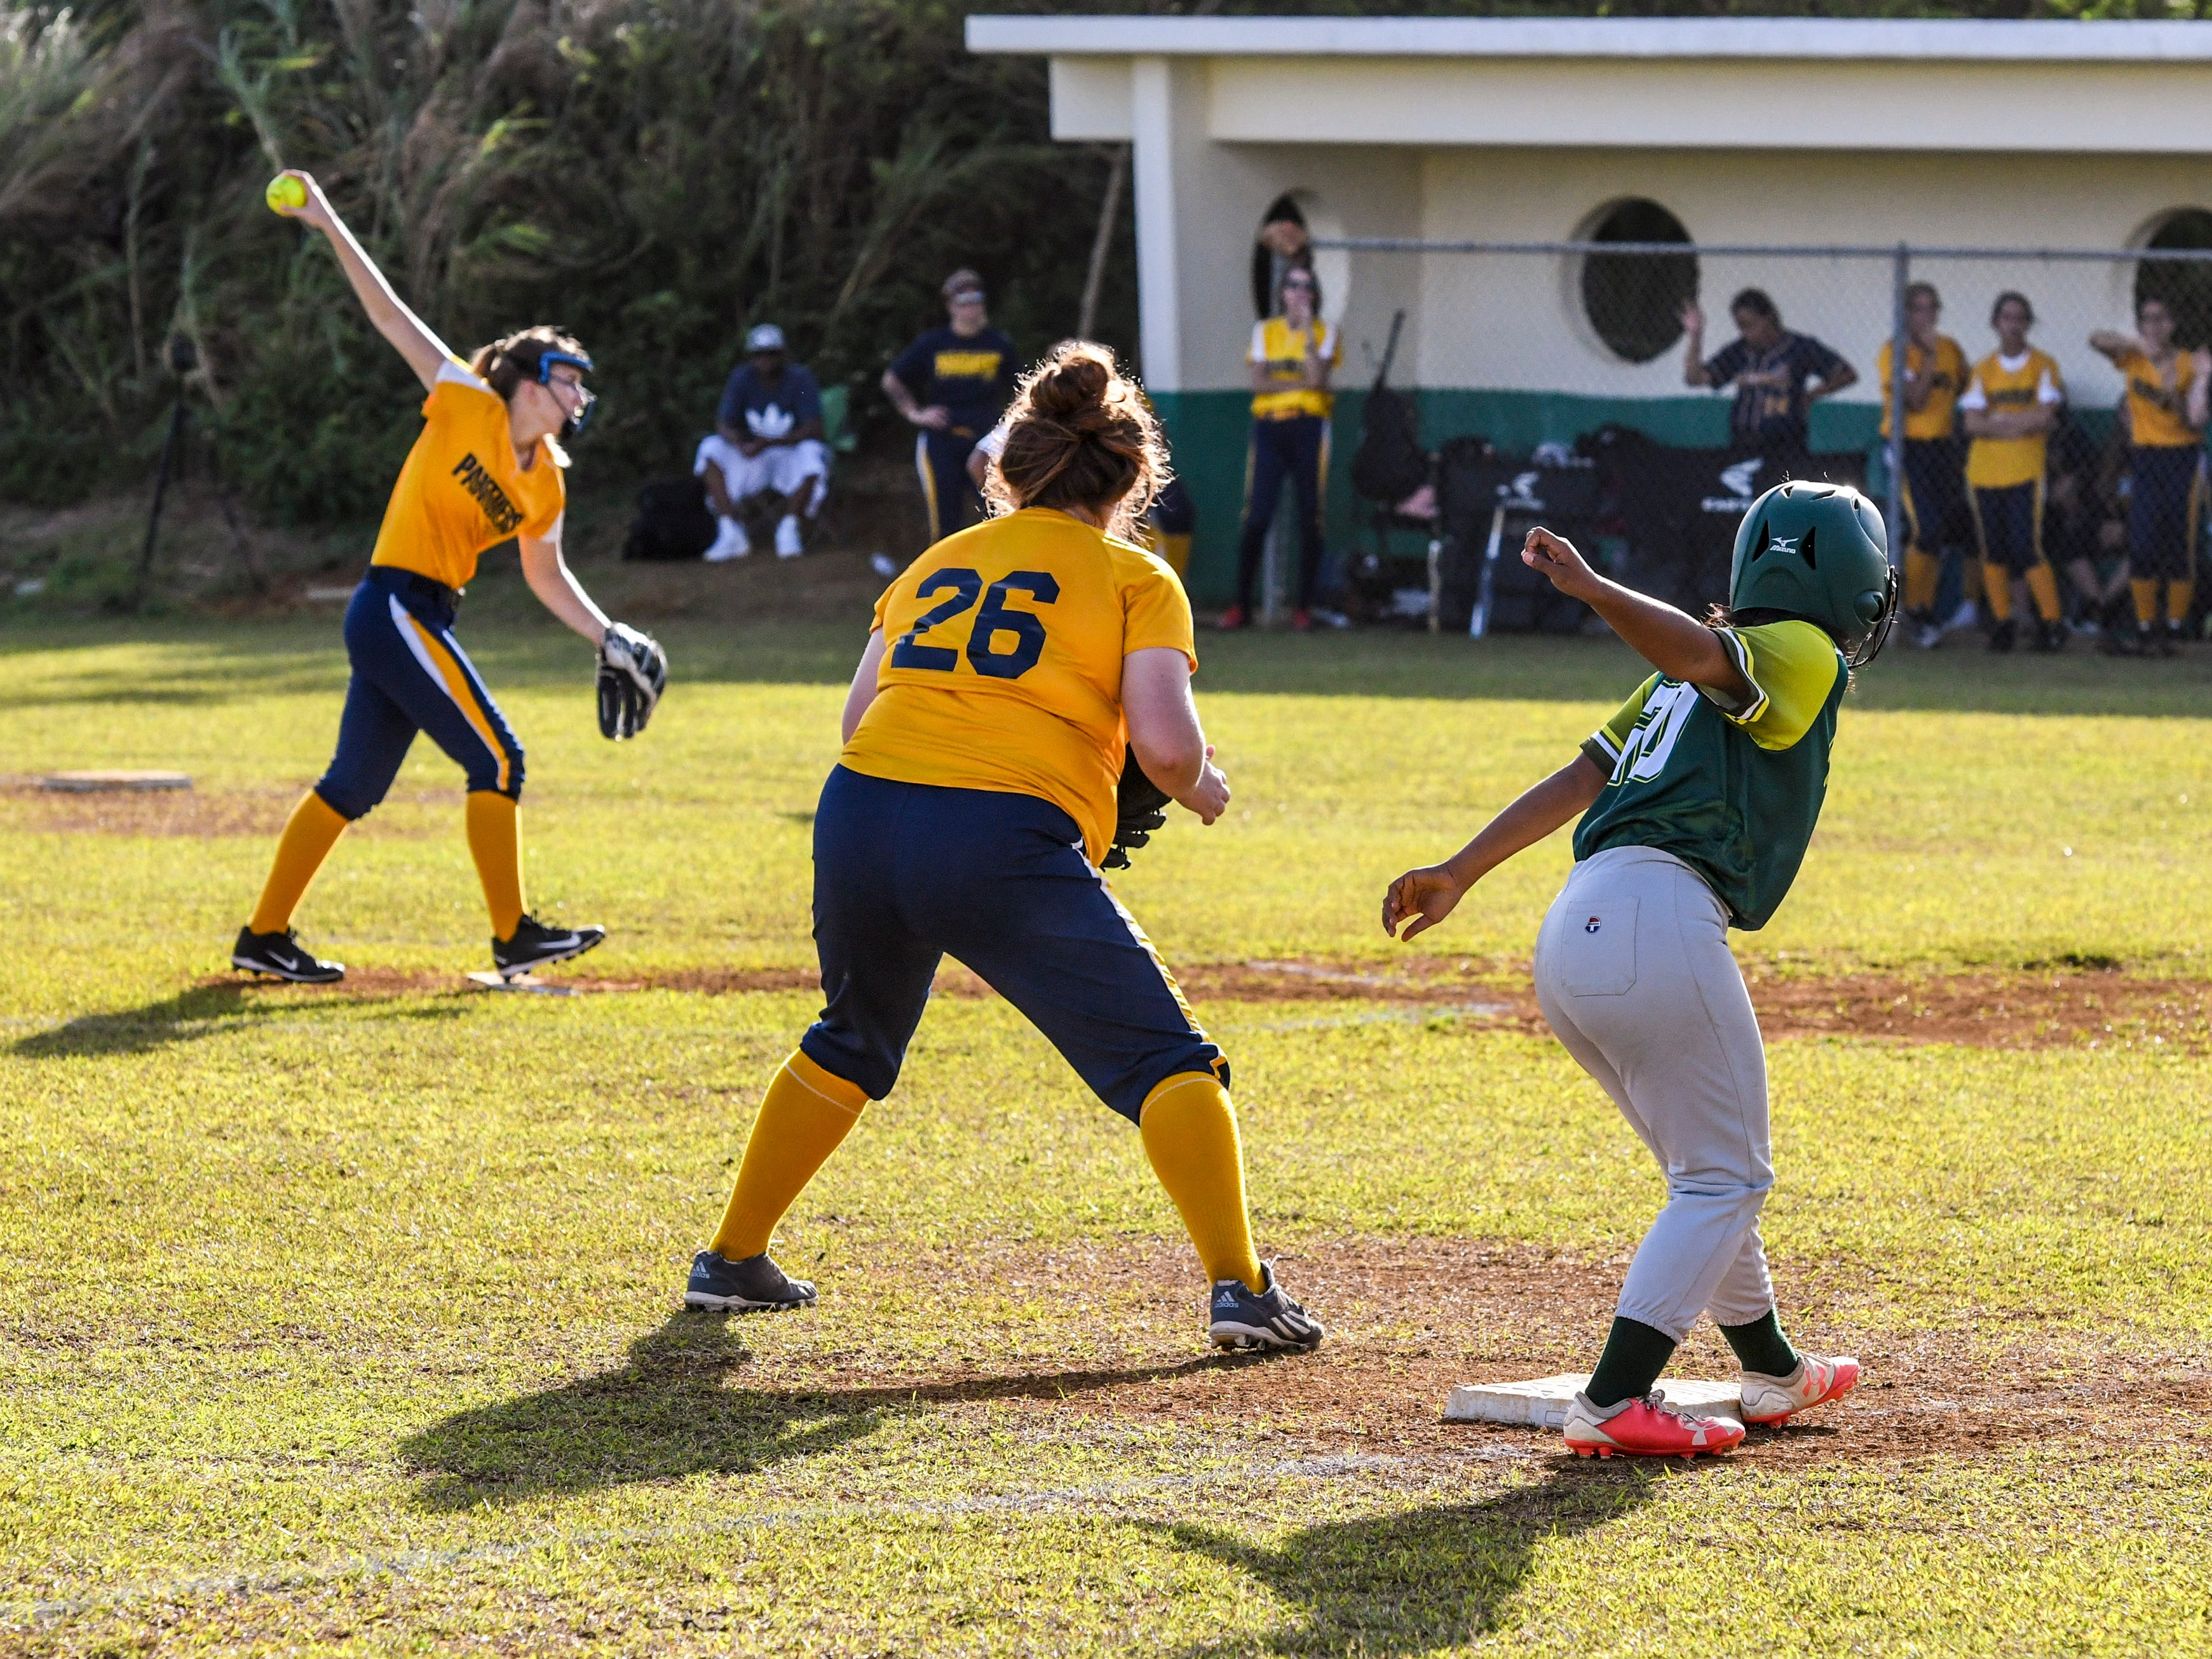 The John F. Kennedy Islanders third-base runner Randi Aflleje (20) mimics Guam High Panthers pitcher, Lexi Blyth, as she attempts to head to home plate to score during their IIAAG girls softball matchup at the JFK High School campus in Tamuning on Thursday, Feb. 7, 2019.